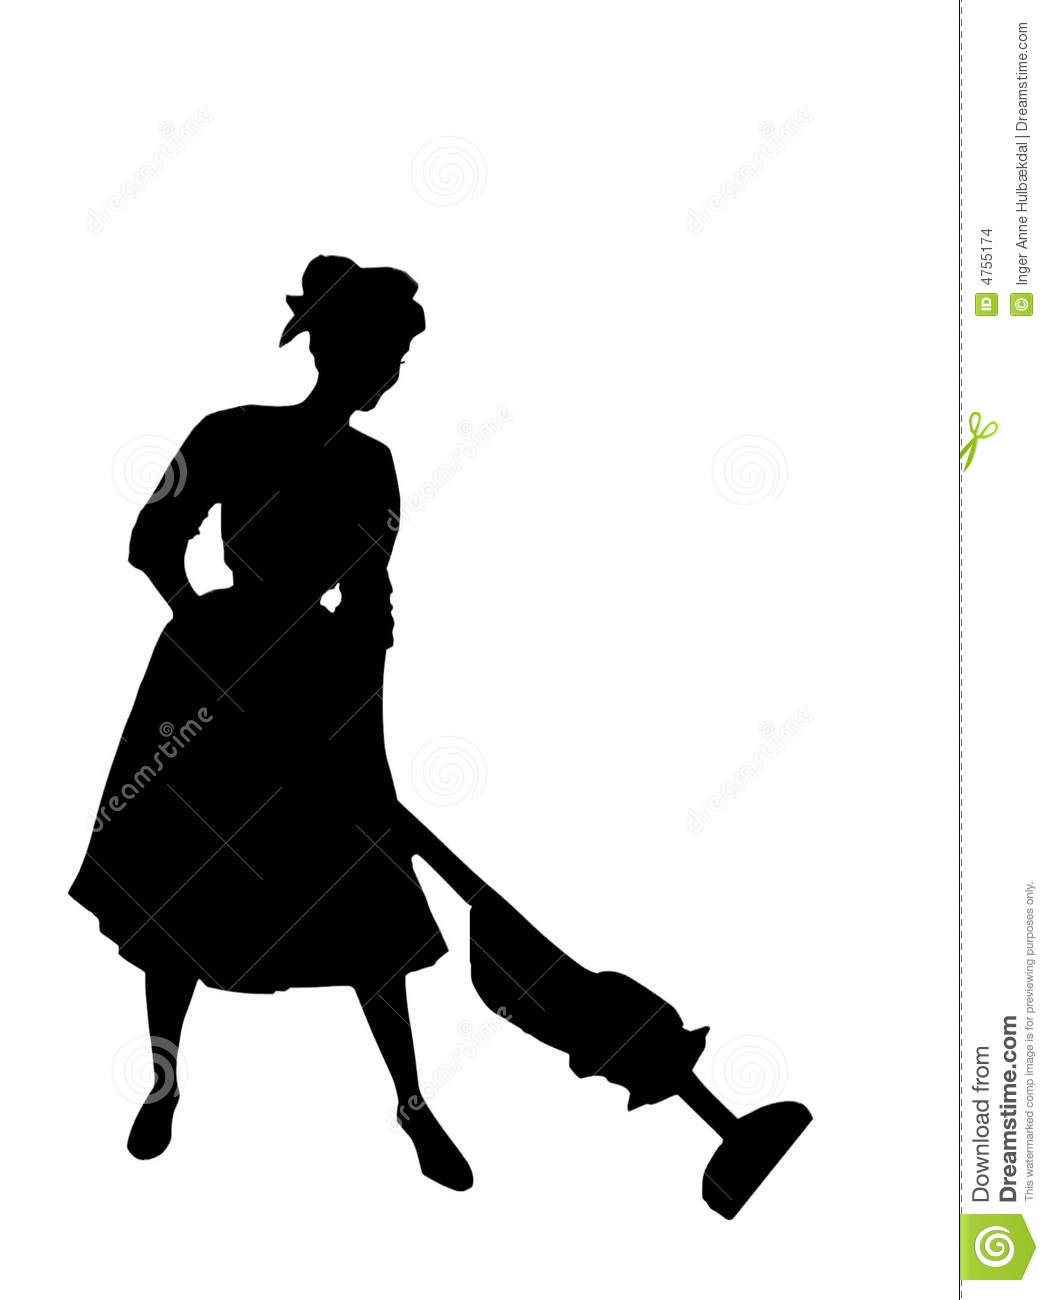 Silhouette Fifty Fab Woman: Housewife Of The 1950's Stock Images